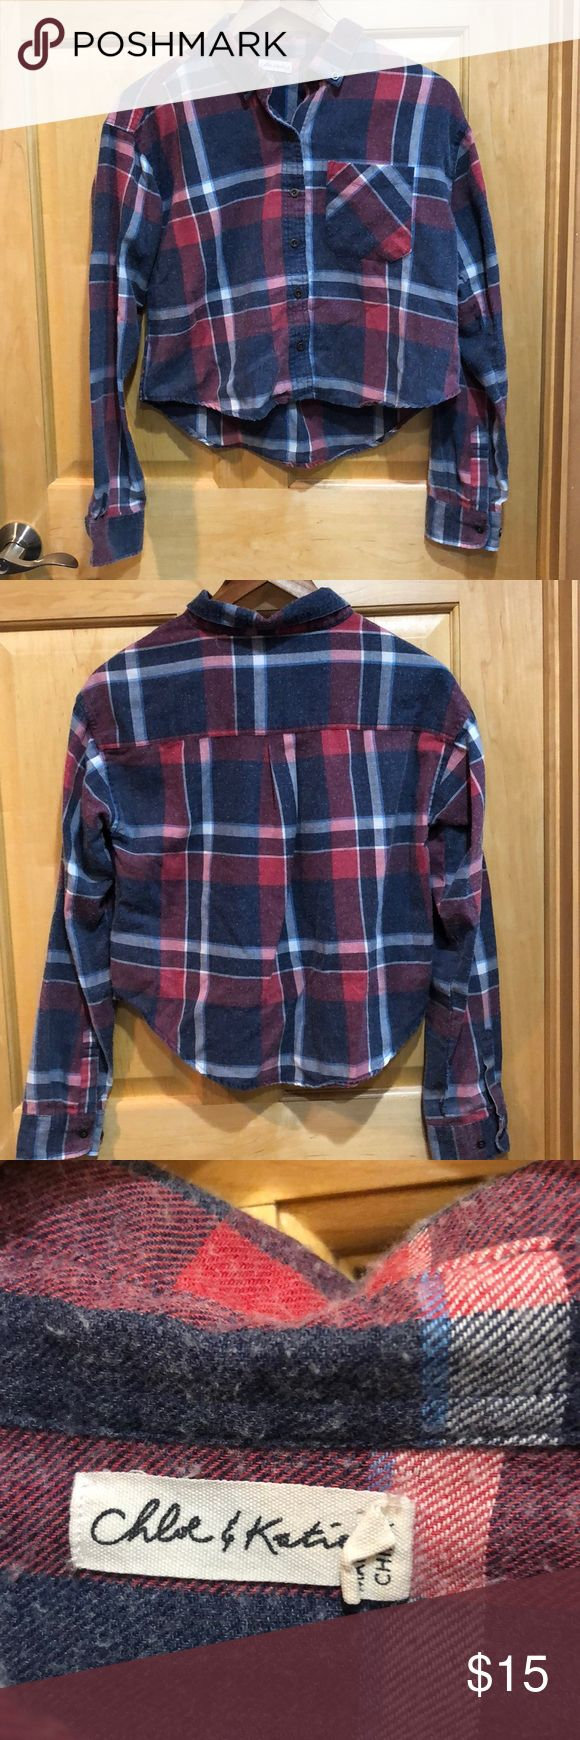 Chloe & Katie Plaid Flannel Shirt slight crop Red/white/blue flannel shirt. Has a worn, pilling grunge look. Fastened with metallic buttons. 20' front 22' back length. Slight crop. Chest patch pocket. Chloe & Katie Tops Crop Tops